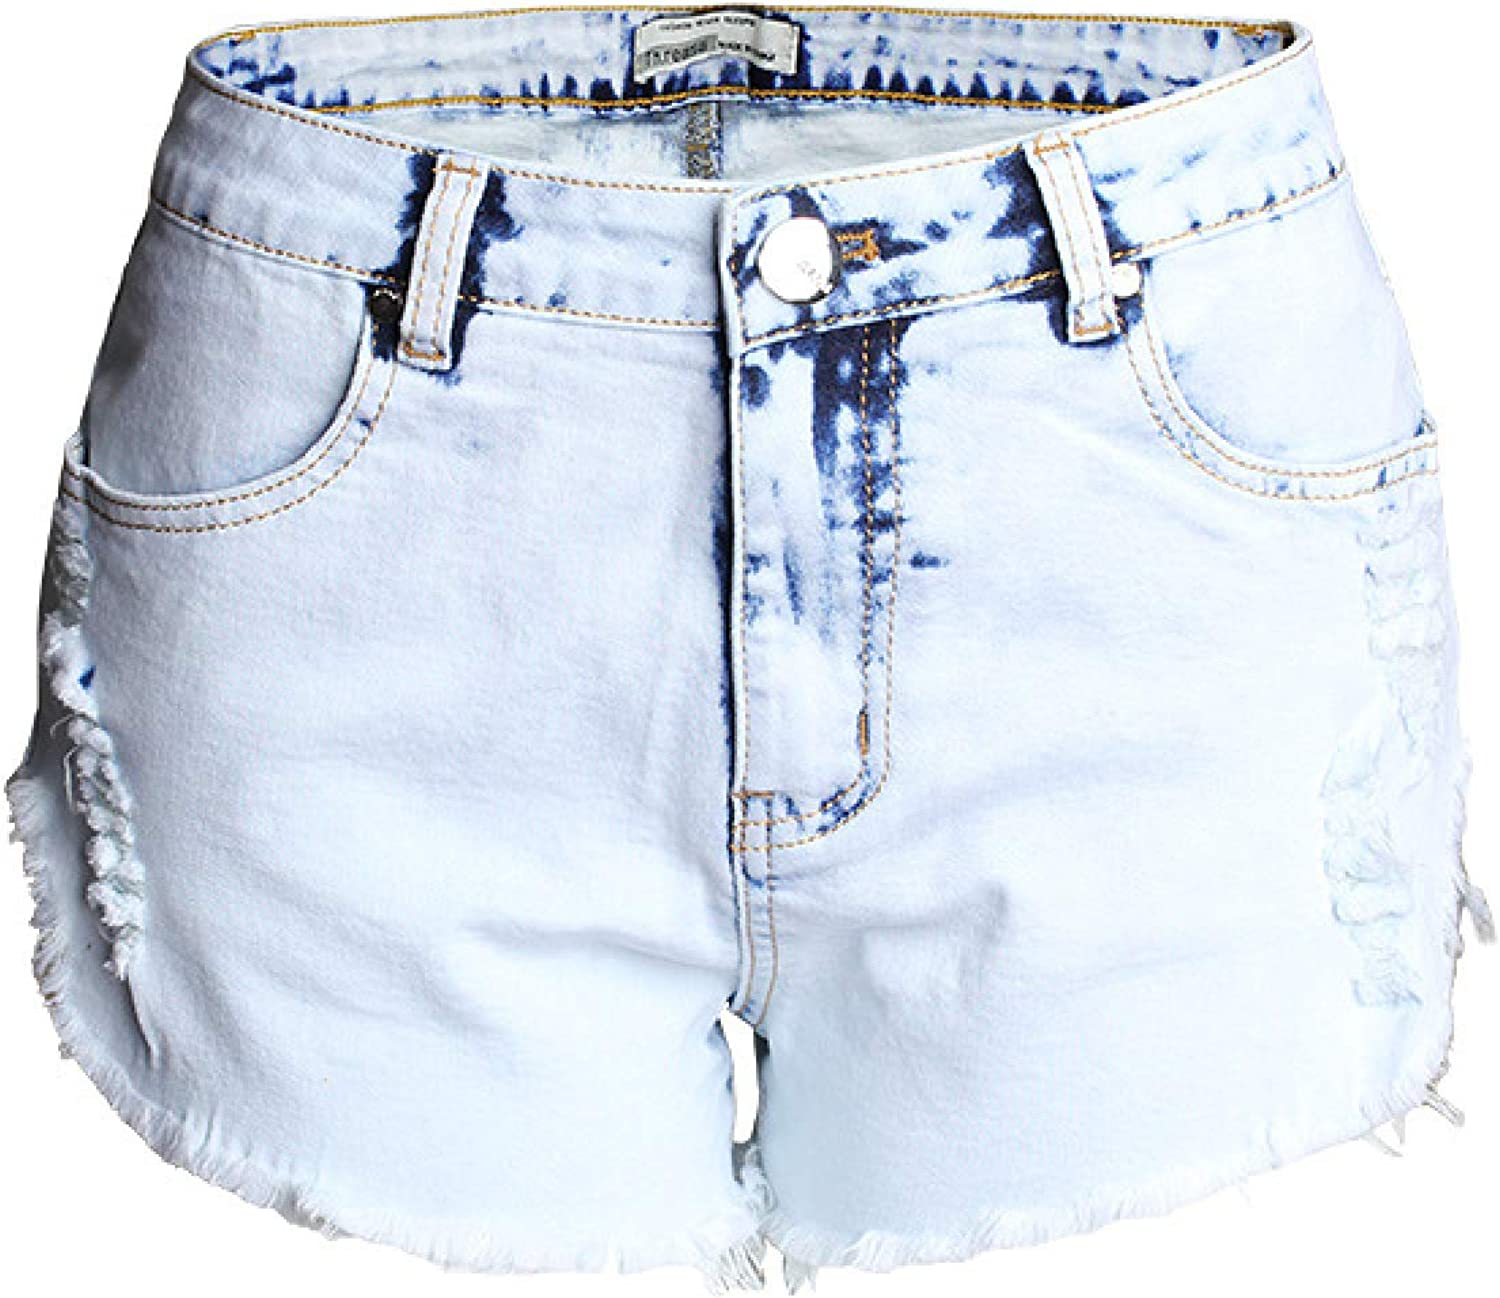 Women's Washed High-Waist Denim Shorts Max 85% OFF Fashion Fray Trend Los Angeles Mall Ripped